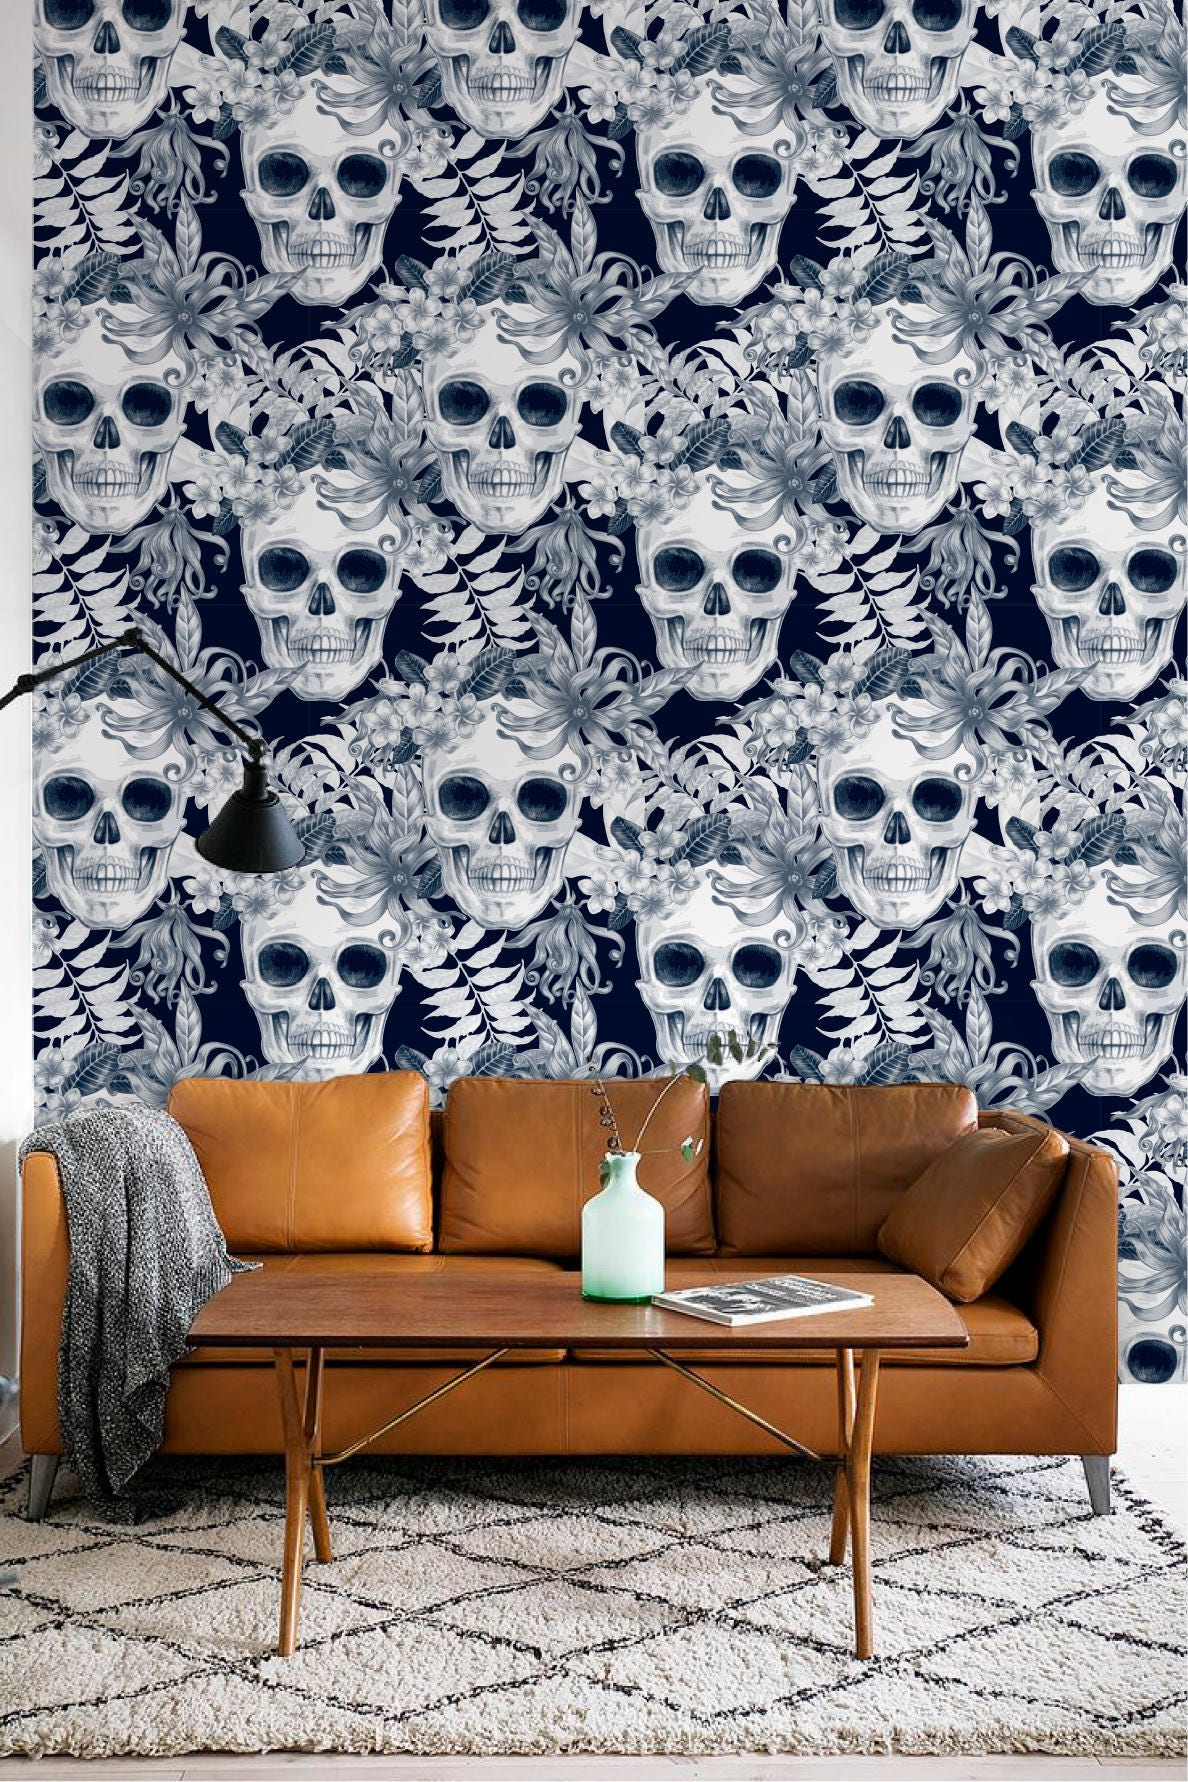 hibiscus and skull wallpaper removable wallpaper fern